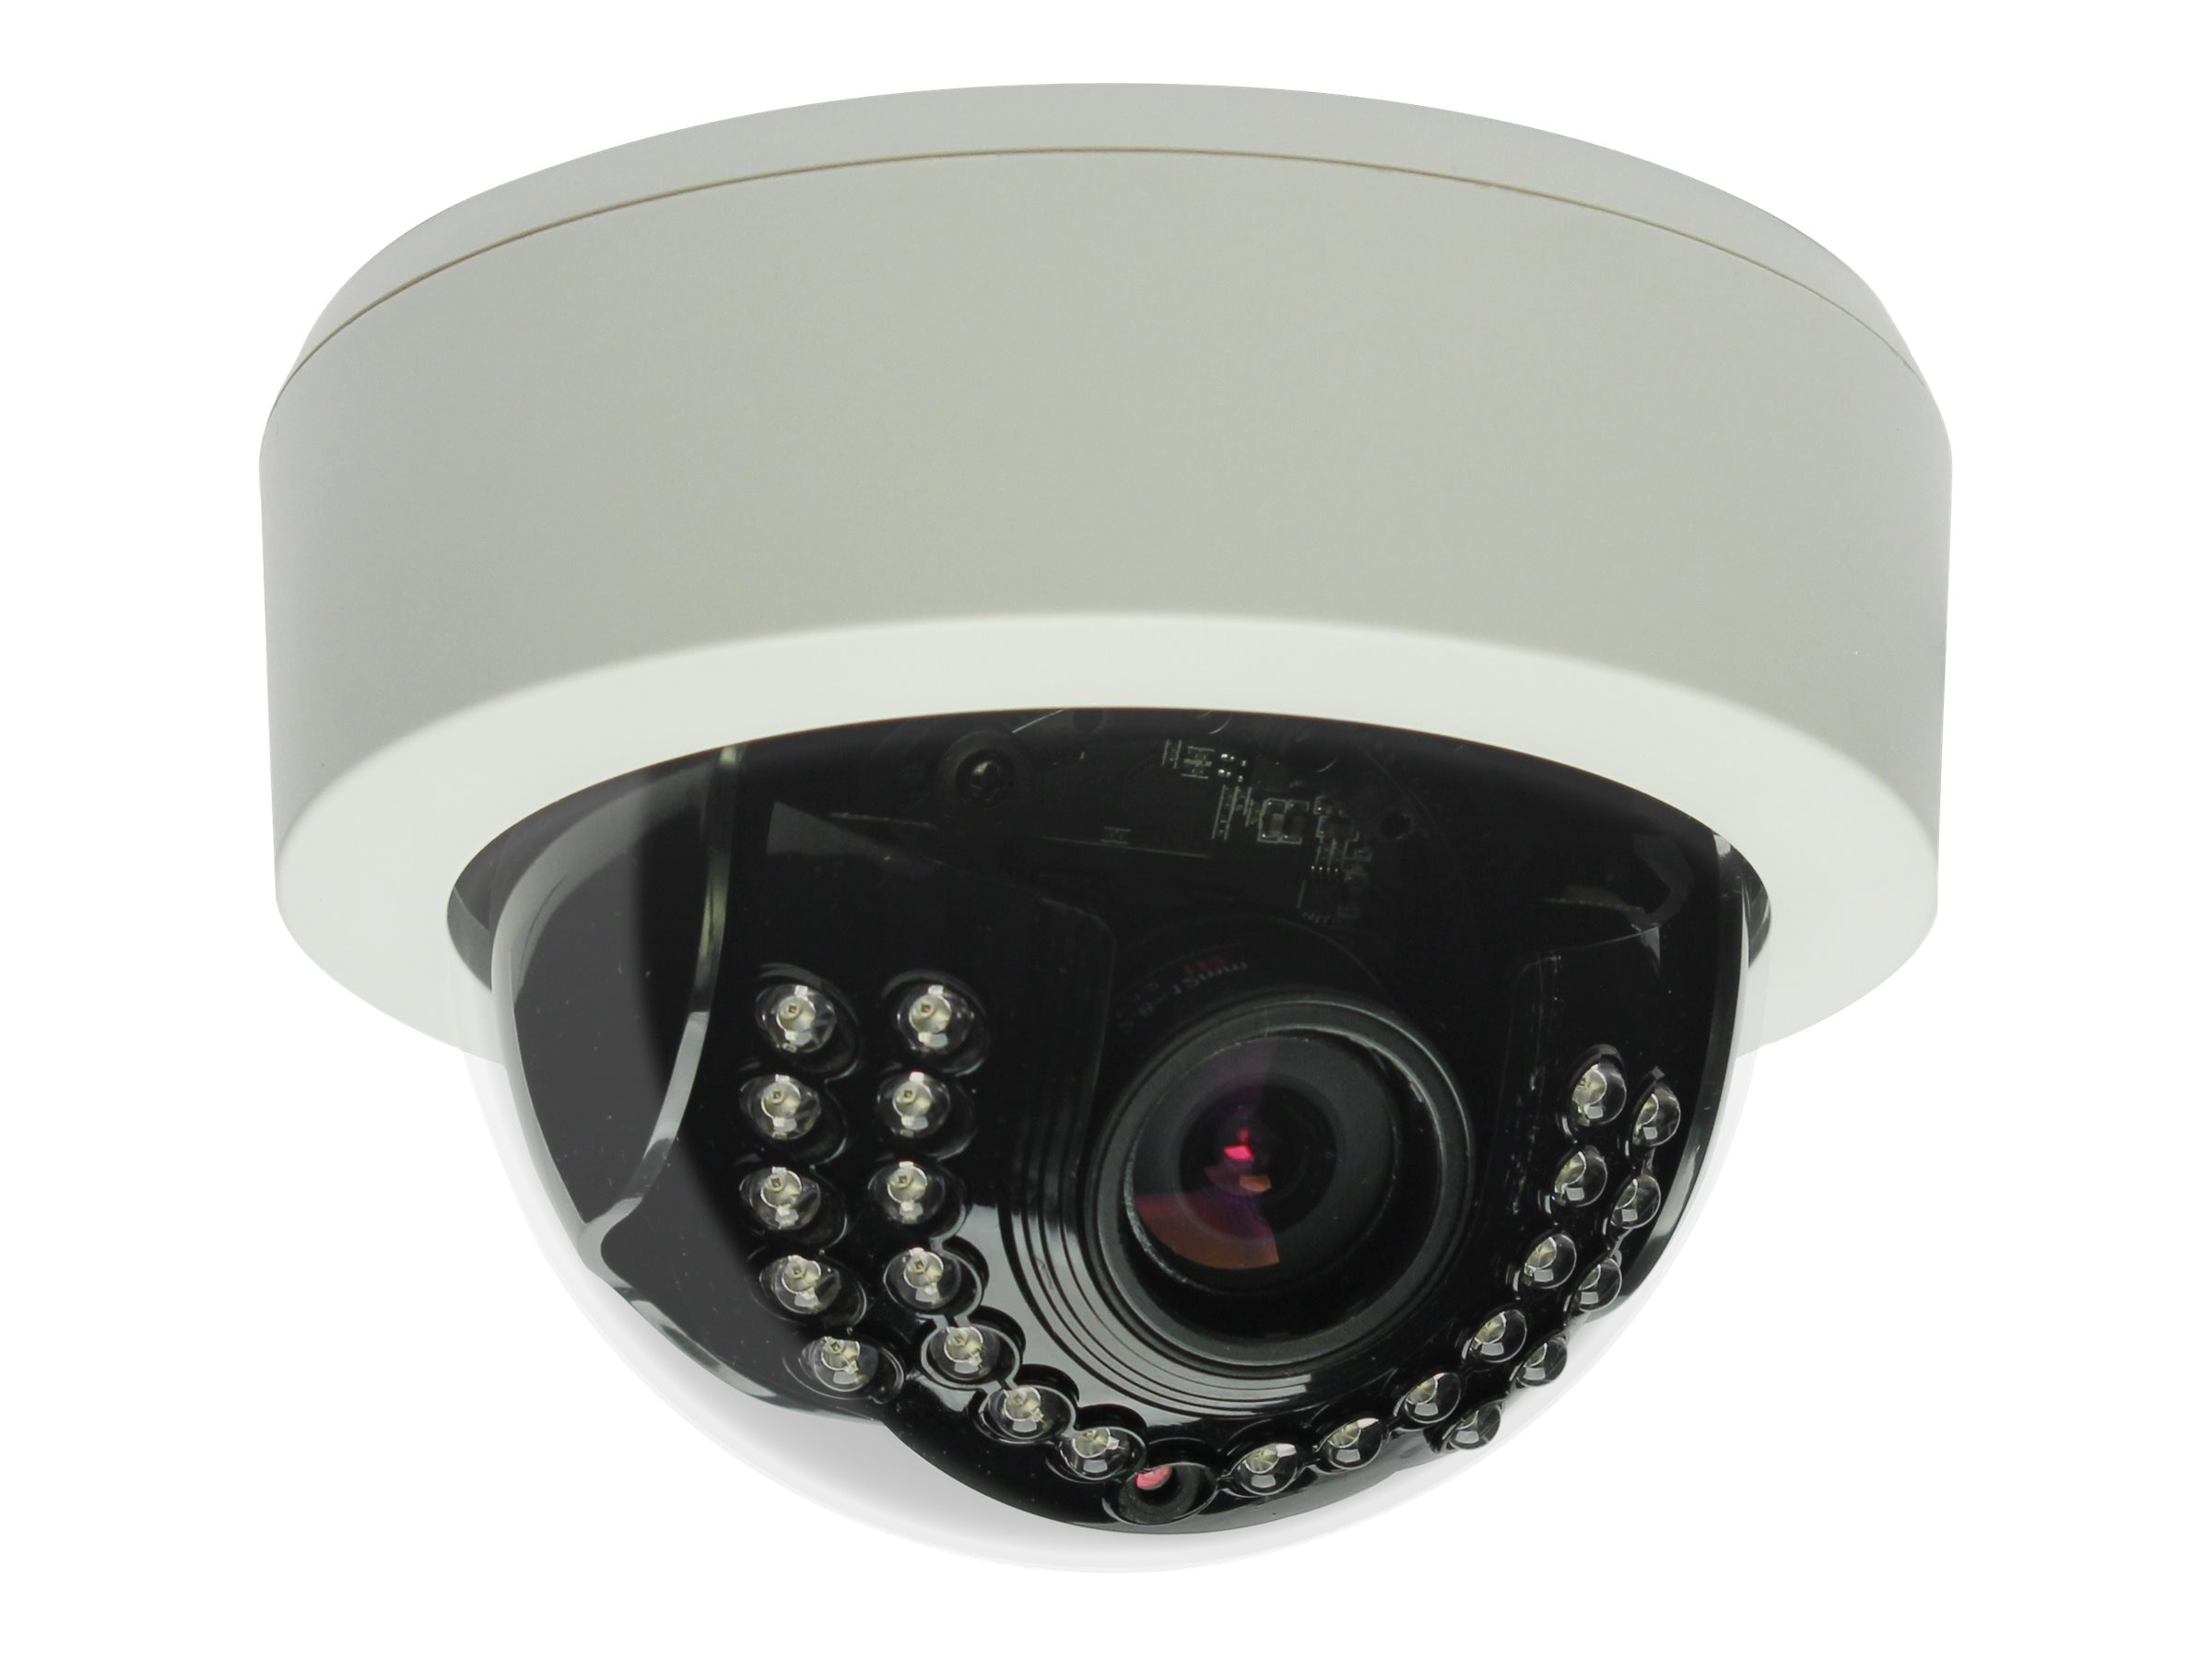 Toshiba 960H Indoor Day Night True WDR Analog Dome Camera, IKS-D207, 31637645, Cameras - Security